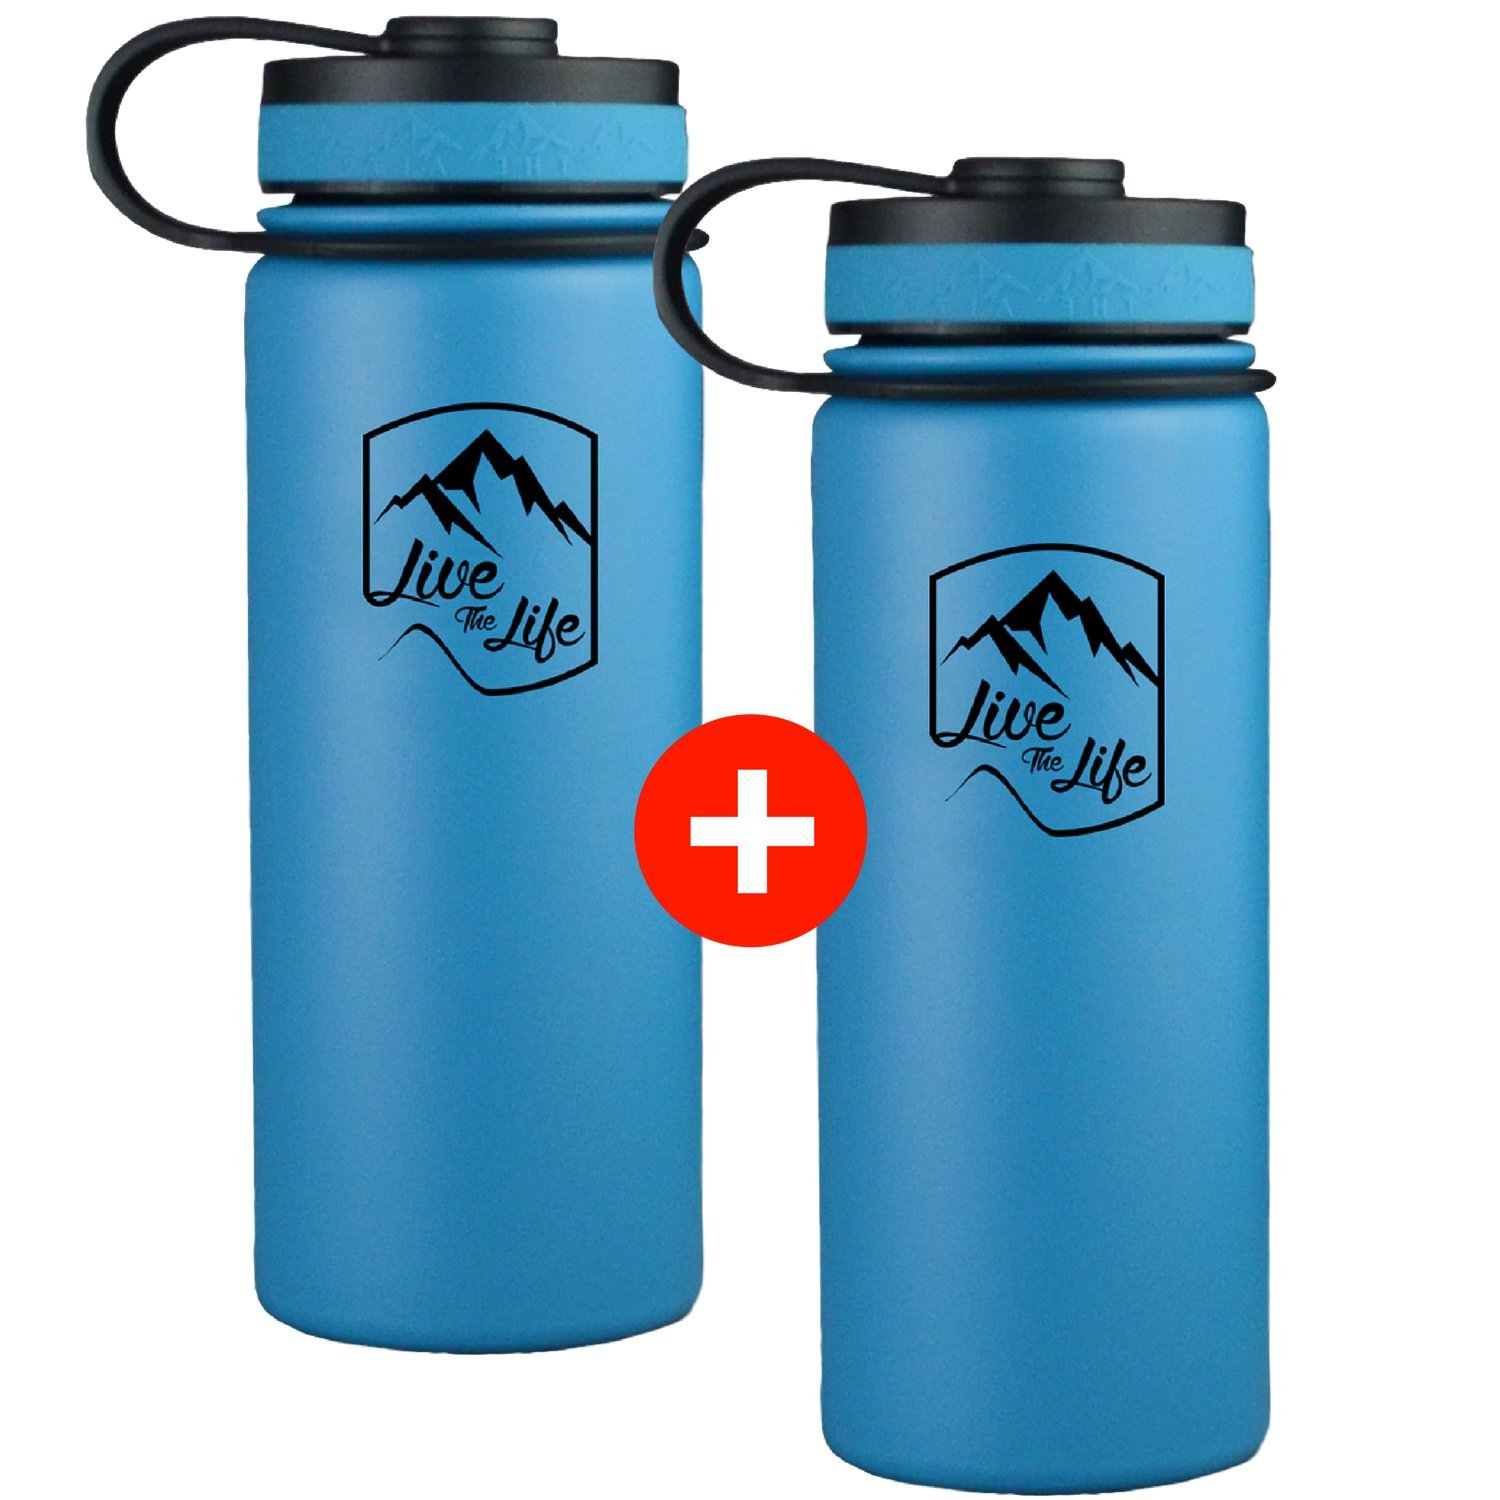 Amazon.com : The Alaska Life Stainless Steel Water Bottle - Wide ...